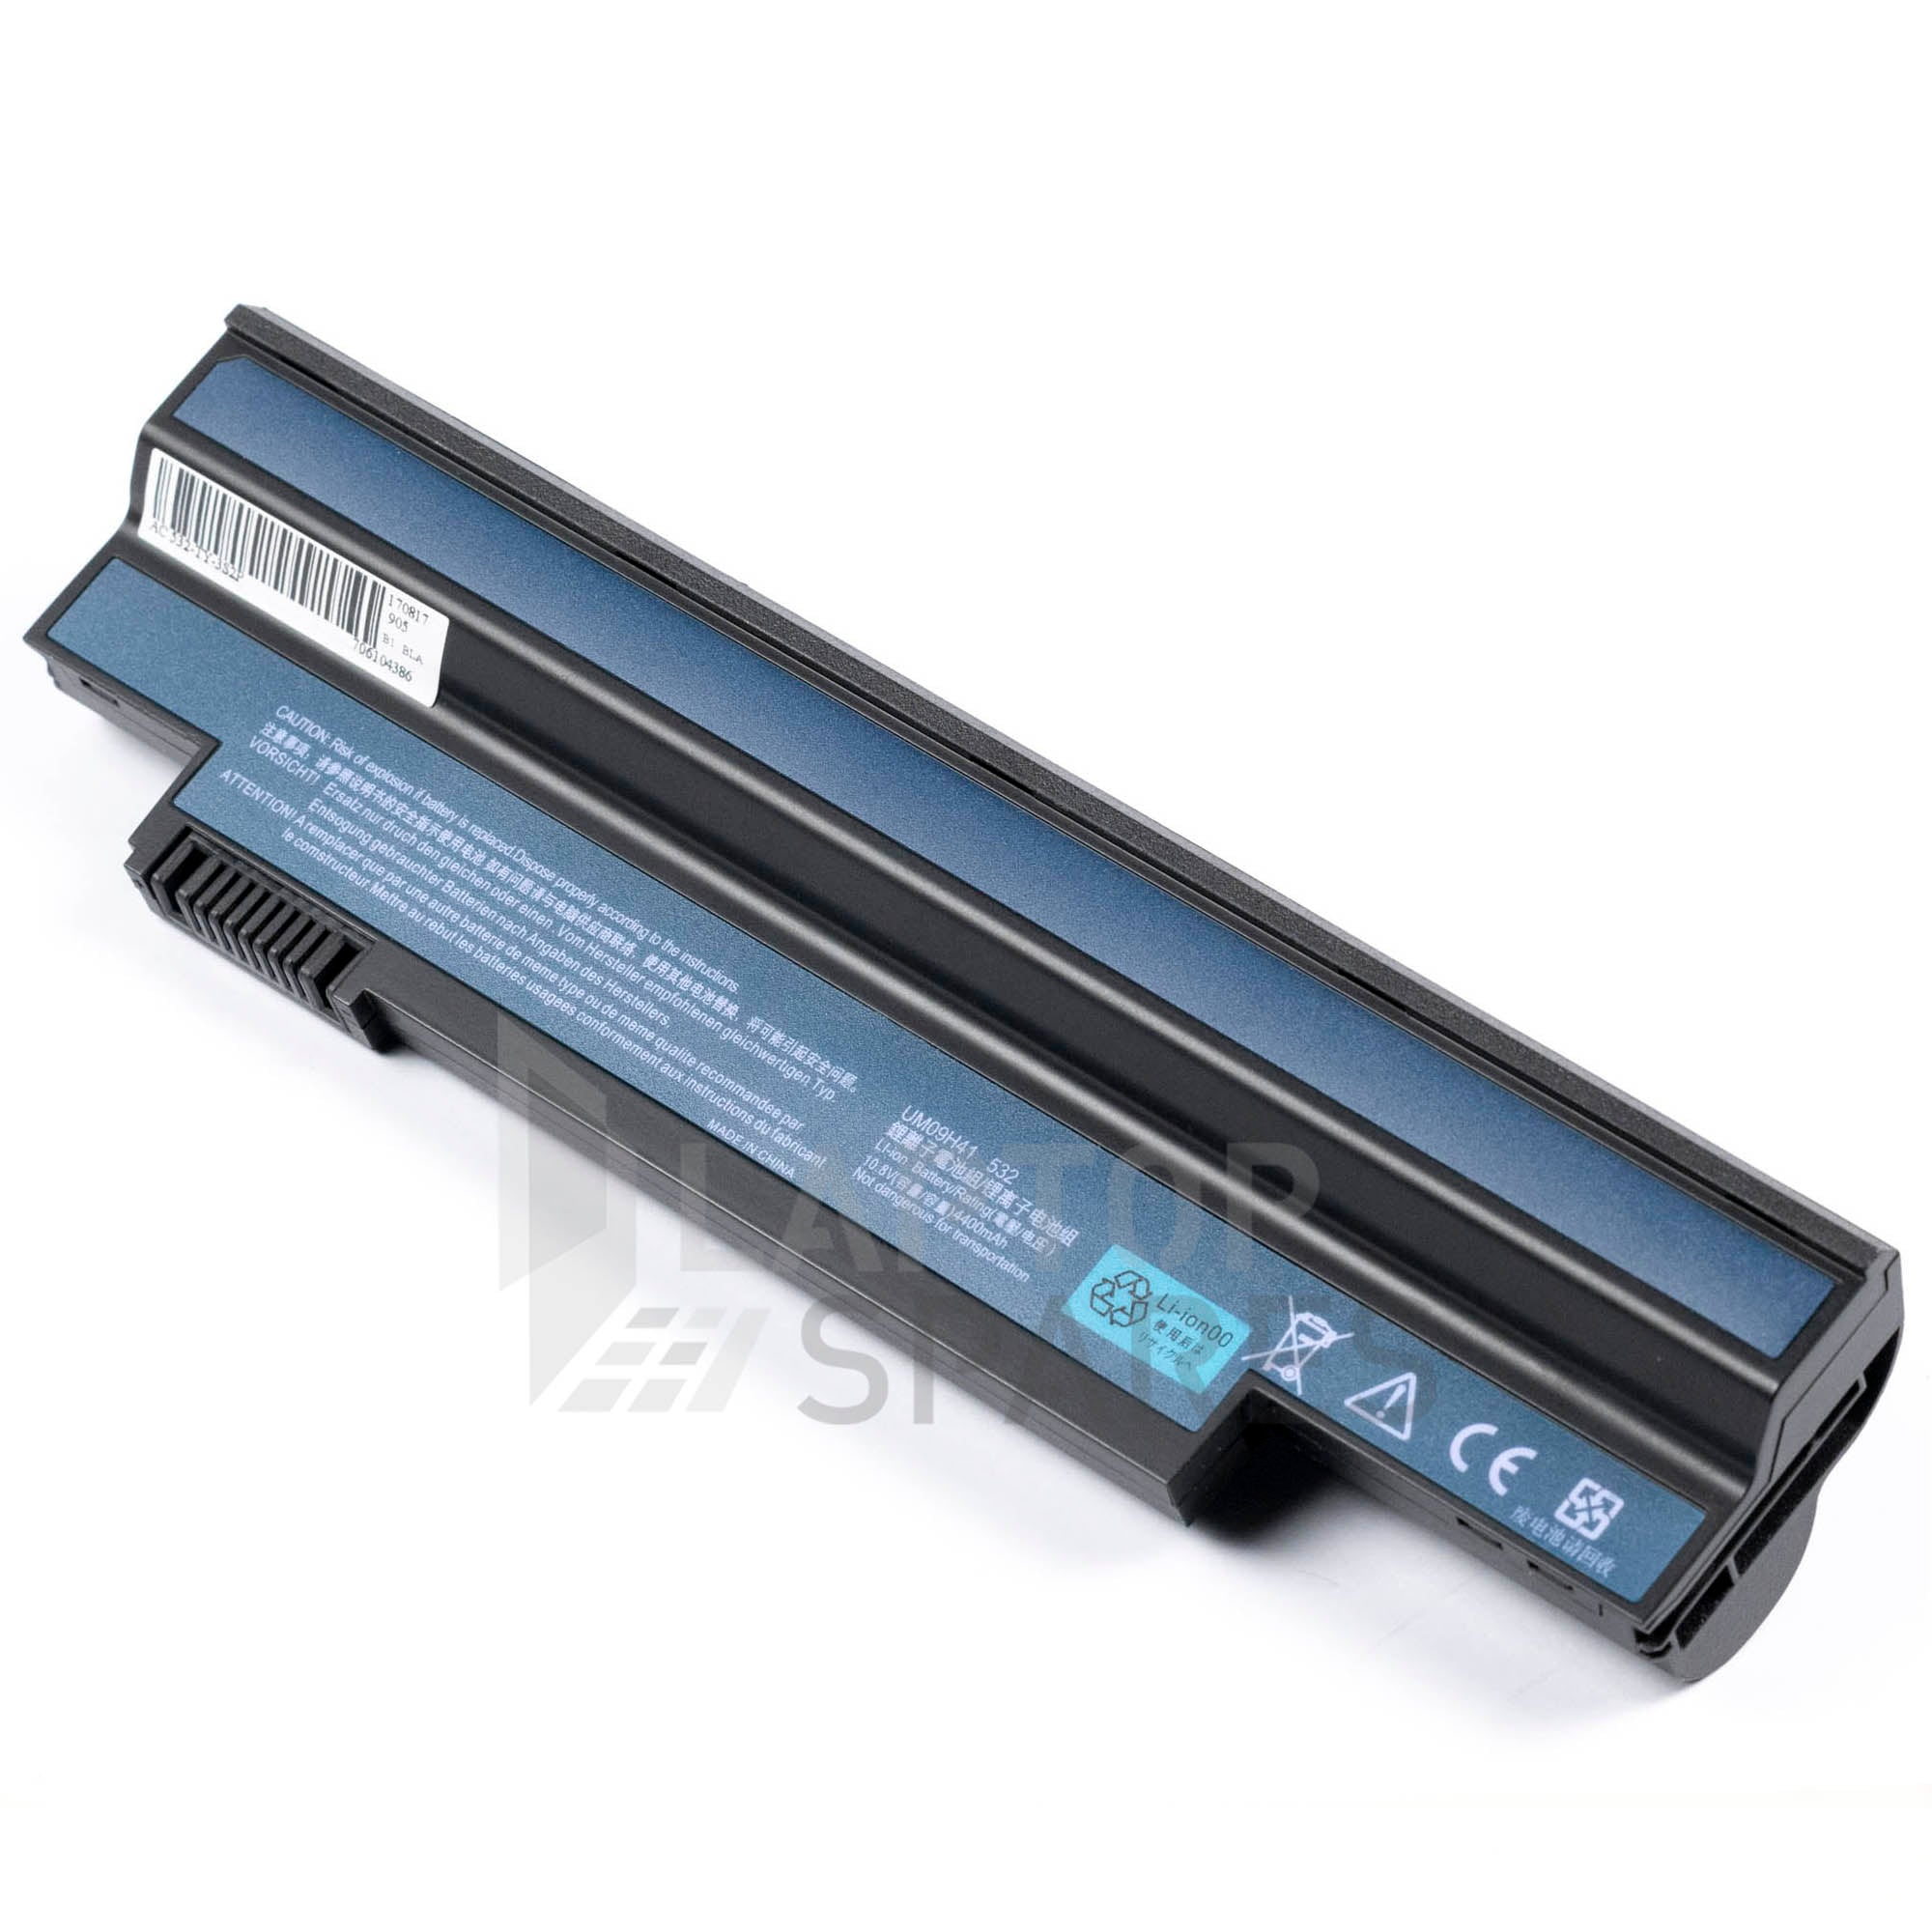 Acer Aspire One 532 4400mAh 6 Cell Battery